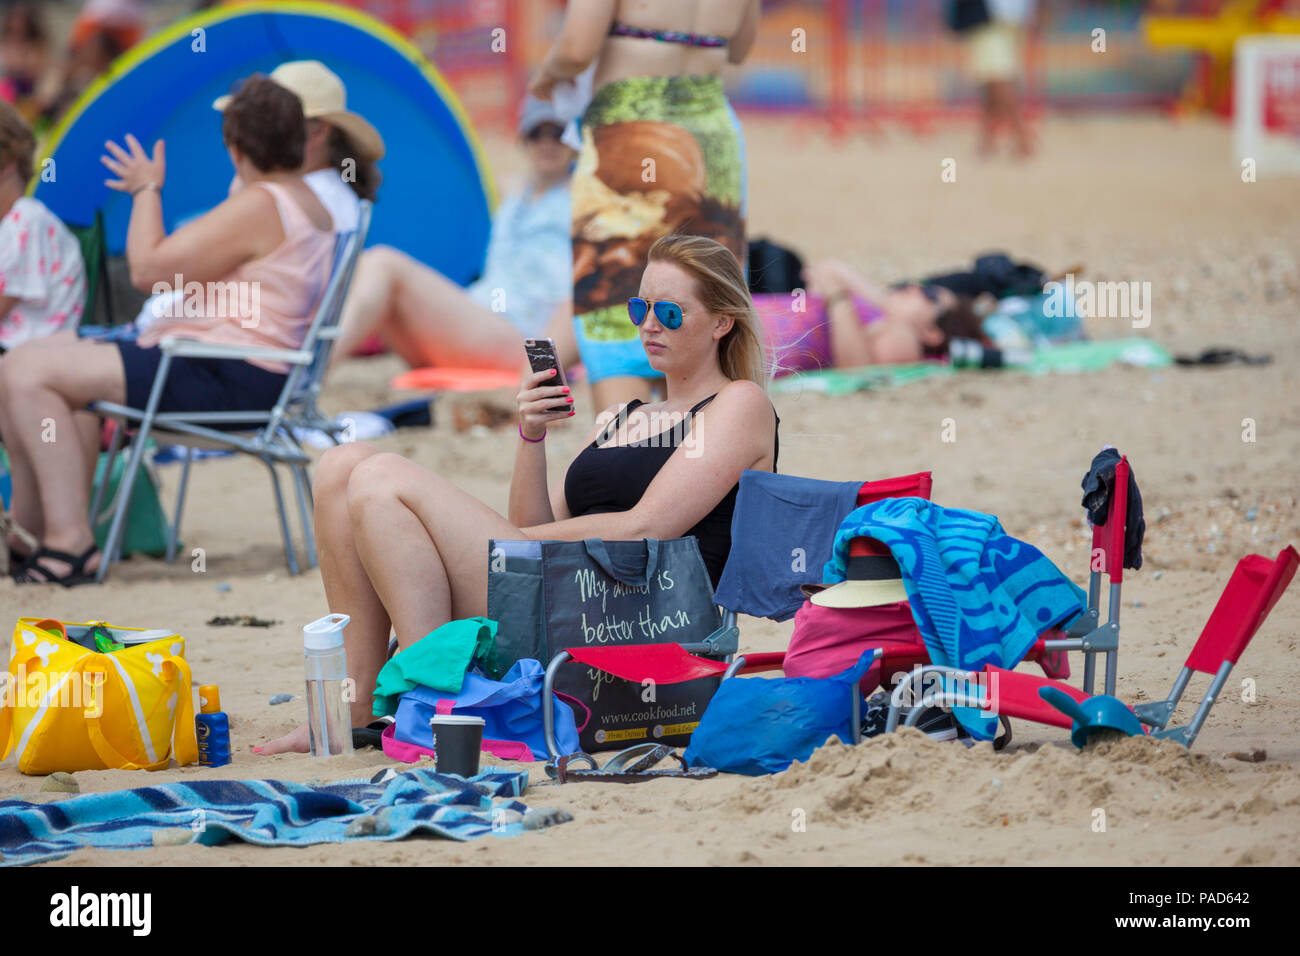 Camber Sands, East Sussex, UK. 22nd Jul, 2018. UK Weather: Hot and sunny weather in camber with scores of people hitting the beach early as this is predicted to be another scorcher of a day. Temperatures are expected to exceed 25°C. Photo Credit: Paul Lawrenson / Alamy Live News - Stock Image